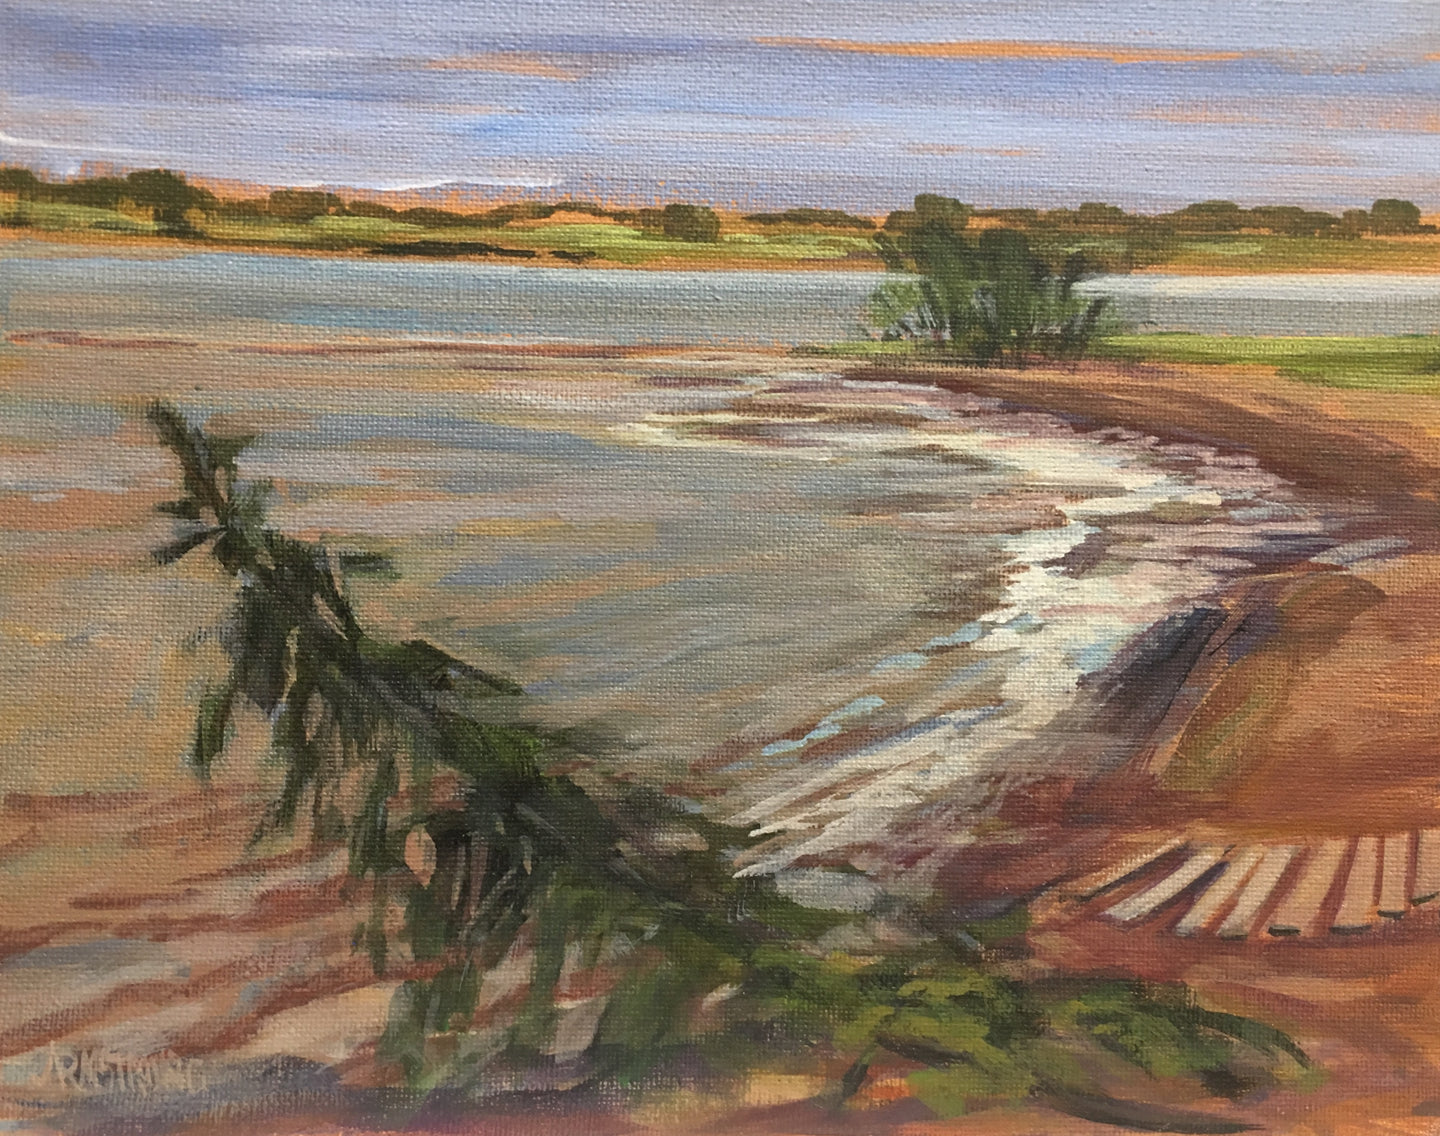 Tide Coming In, PEI, 8 x 10